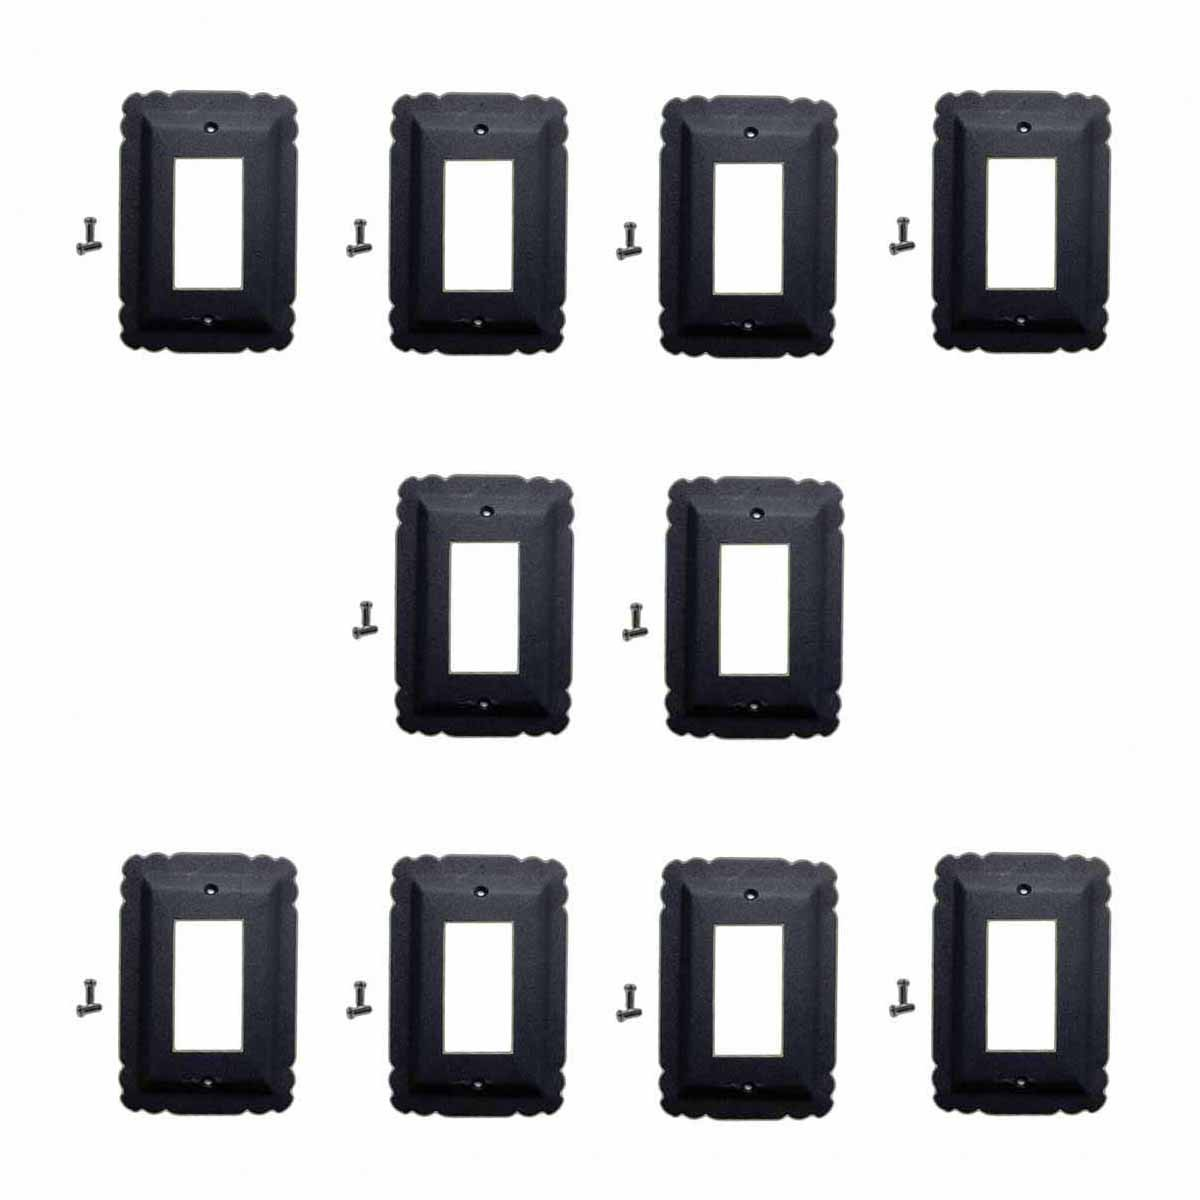 10 Switchplate Black Steel SIngle GFI RSF| Renovator's Su...